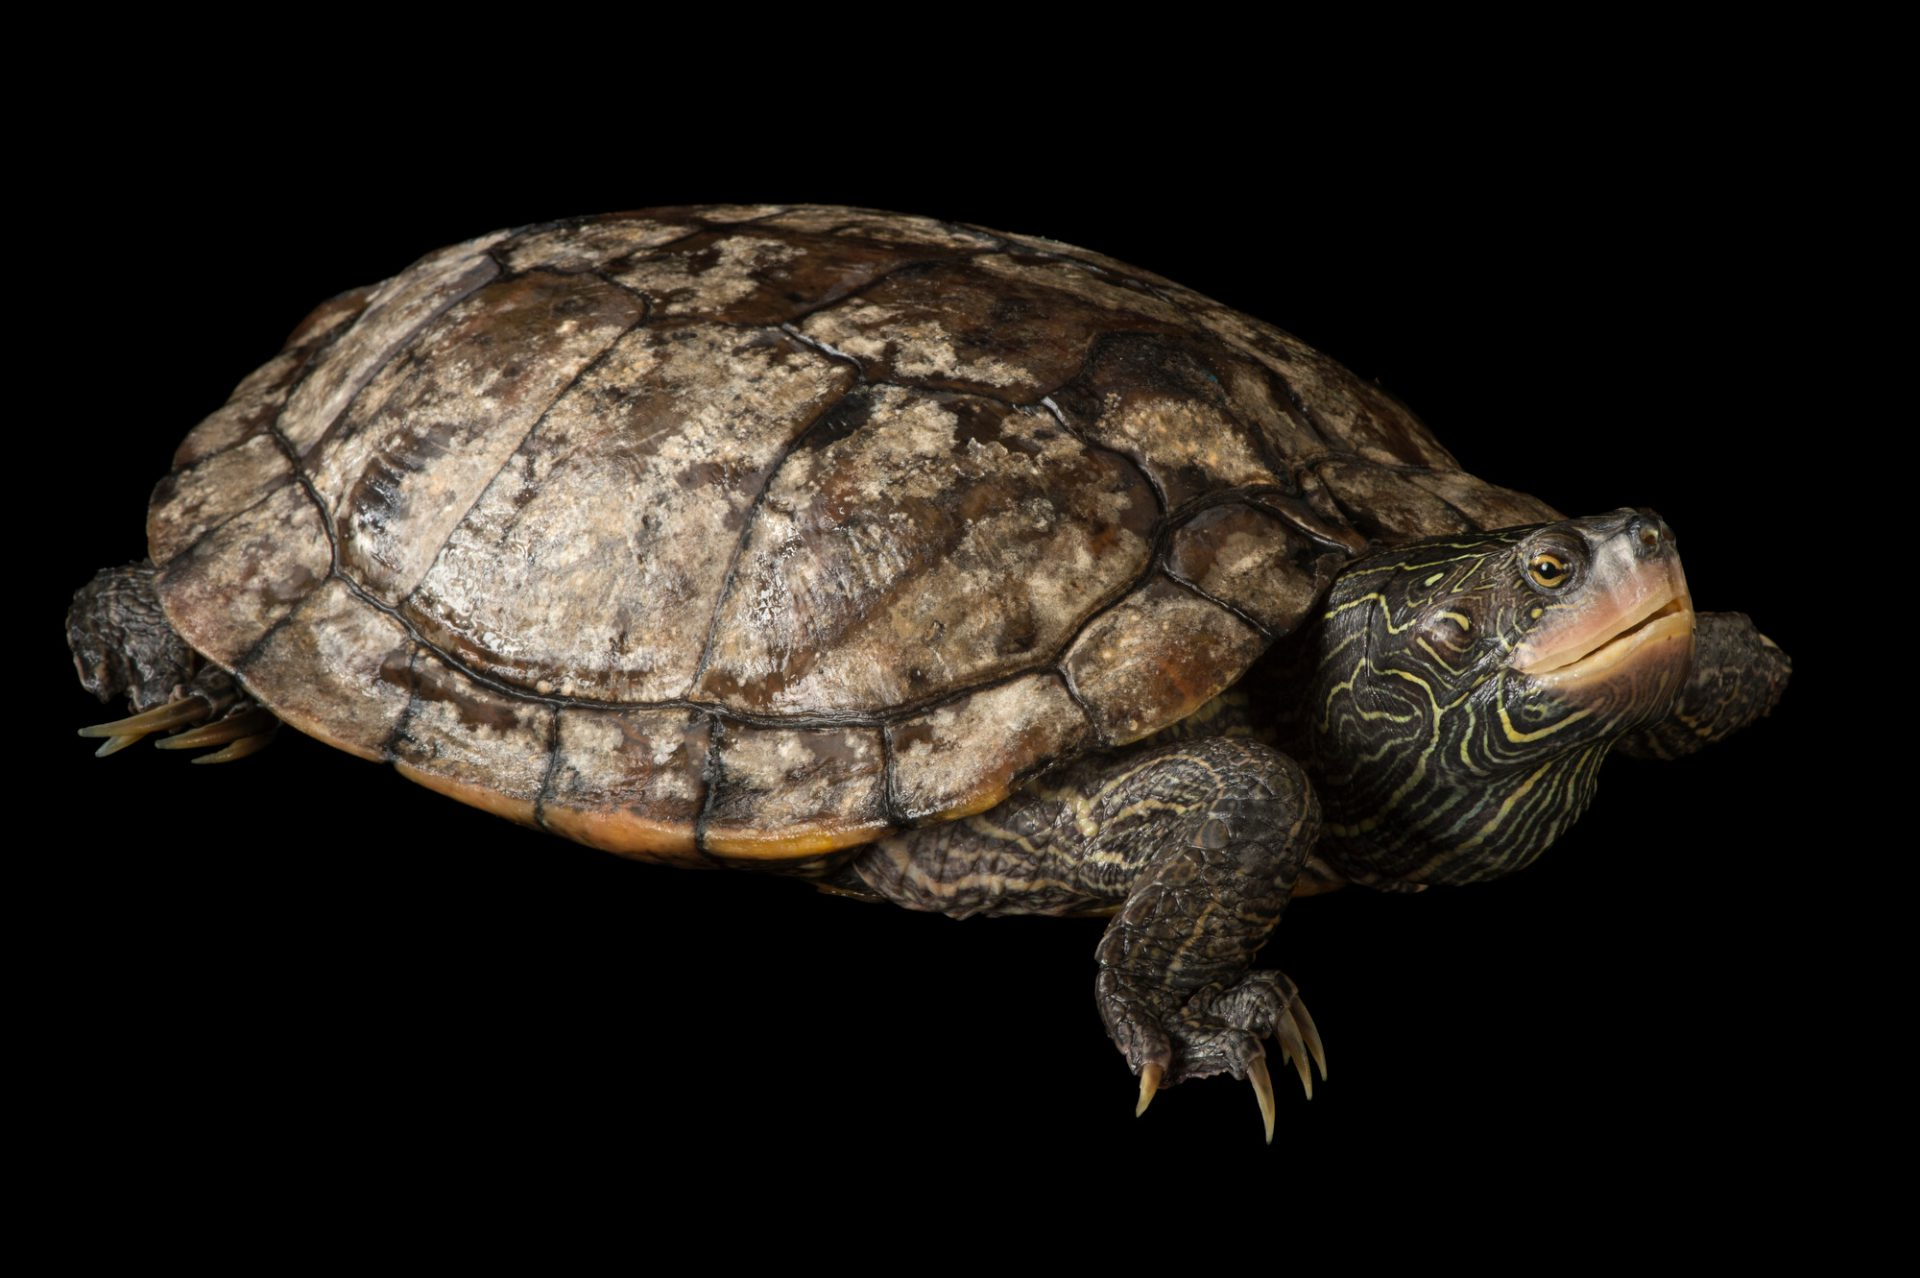 Picture of a false map turtle (Graptemys pseudogeographica) at the National Mississippi River Museum and Aquarium in Dubuque, Iowa.